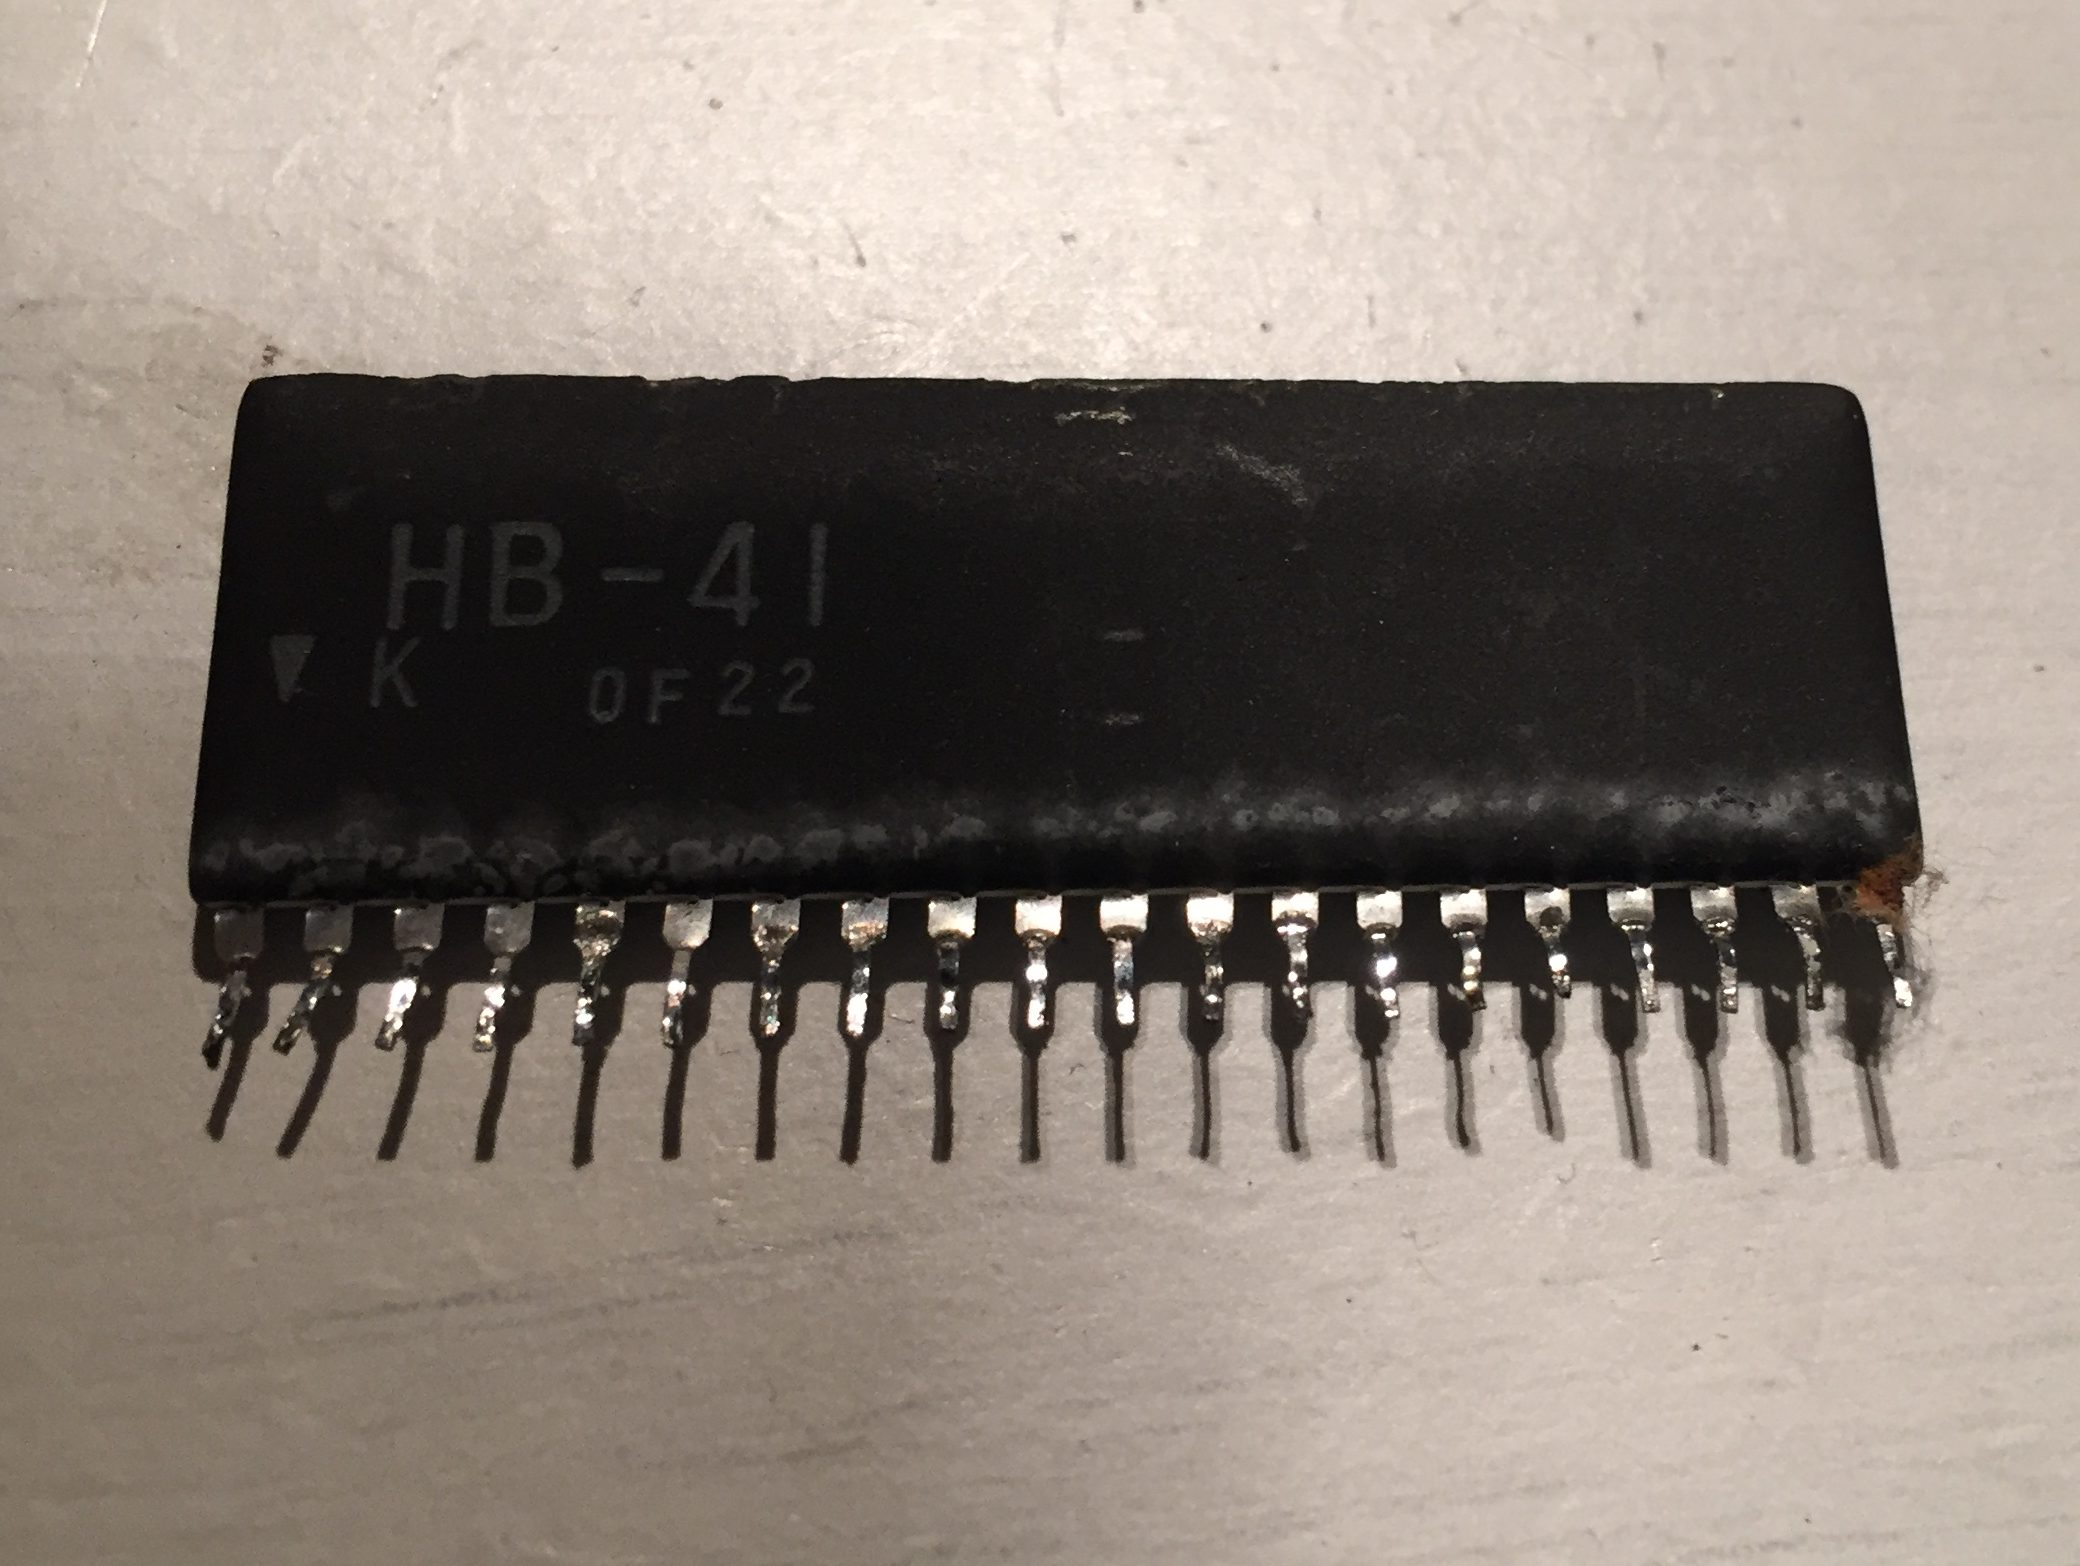 Faulty HB-41 SIL package